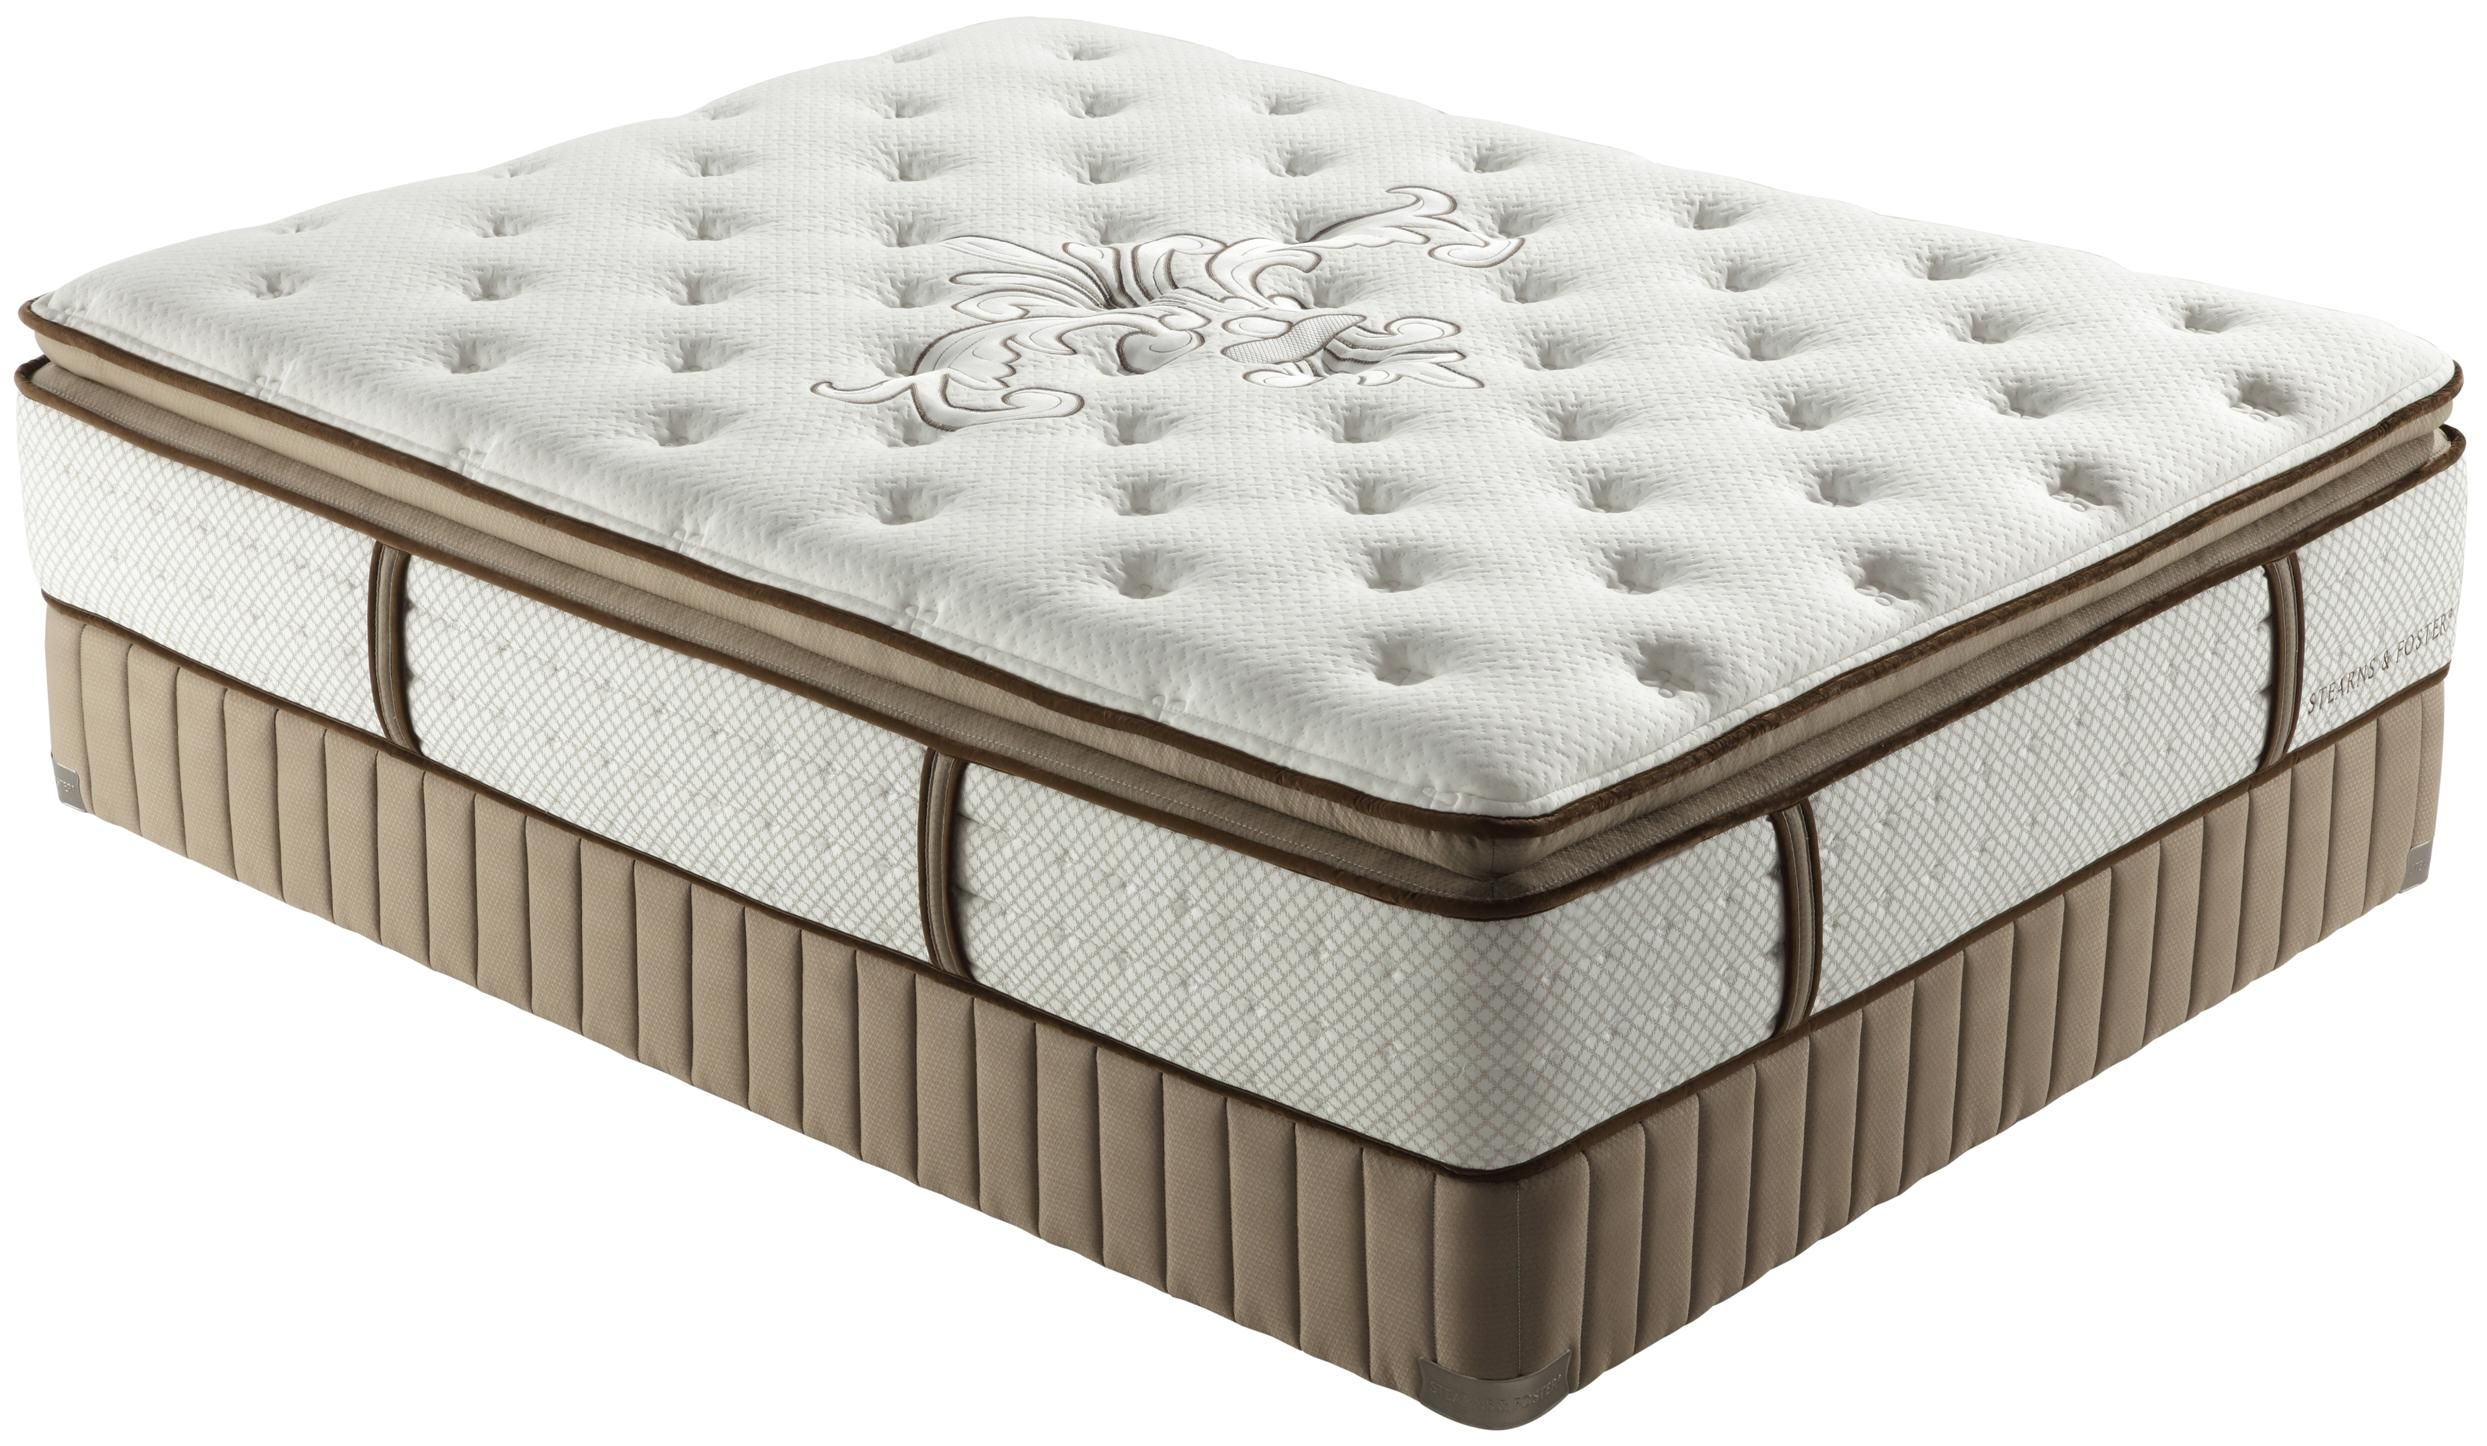 Stearns And Foster Luxury Firm Euro Pillowtop King